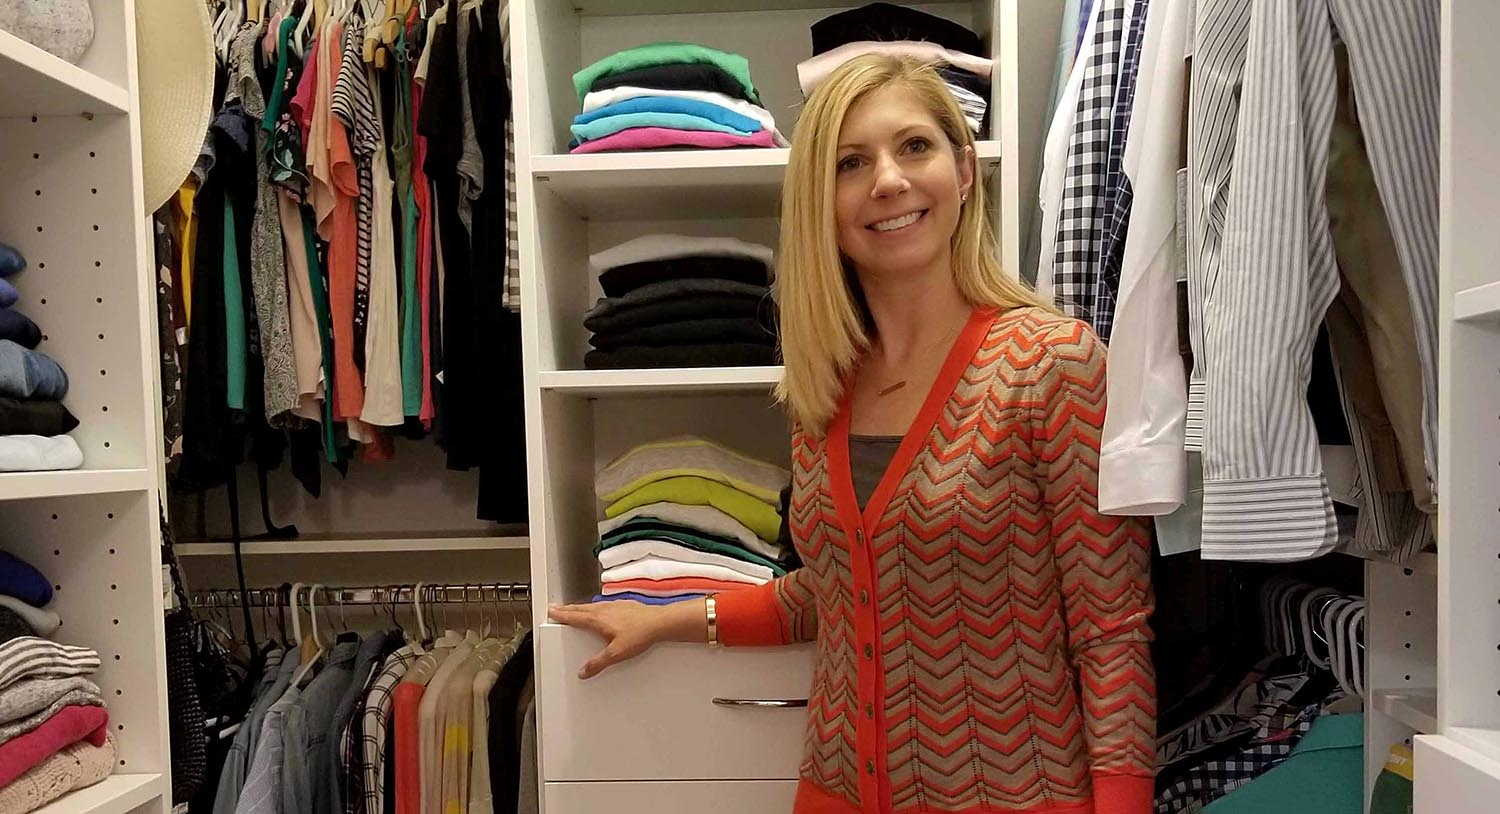 Woman happily standing in front of her organized closet